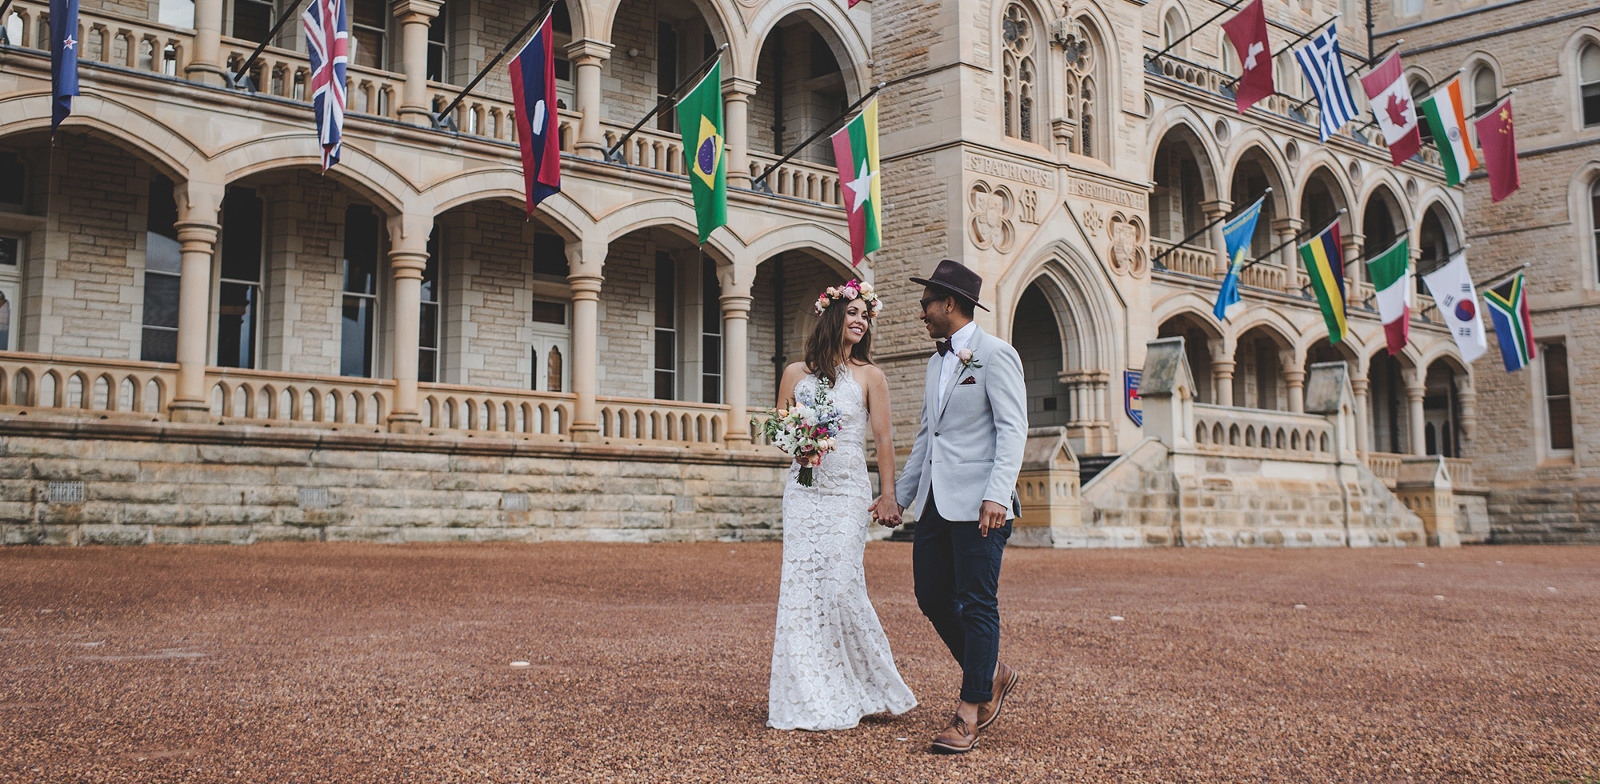 Globetrotting with the Bride and Groom at ICM College in Manly